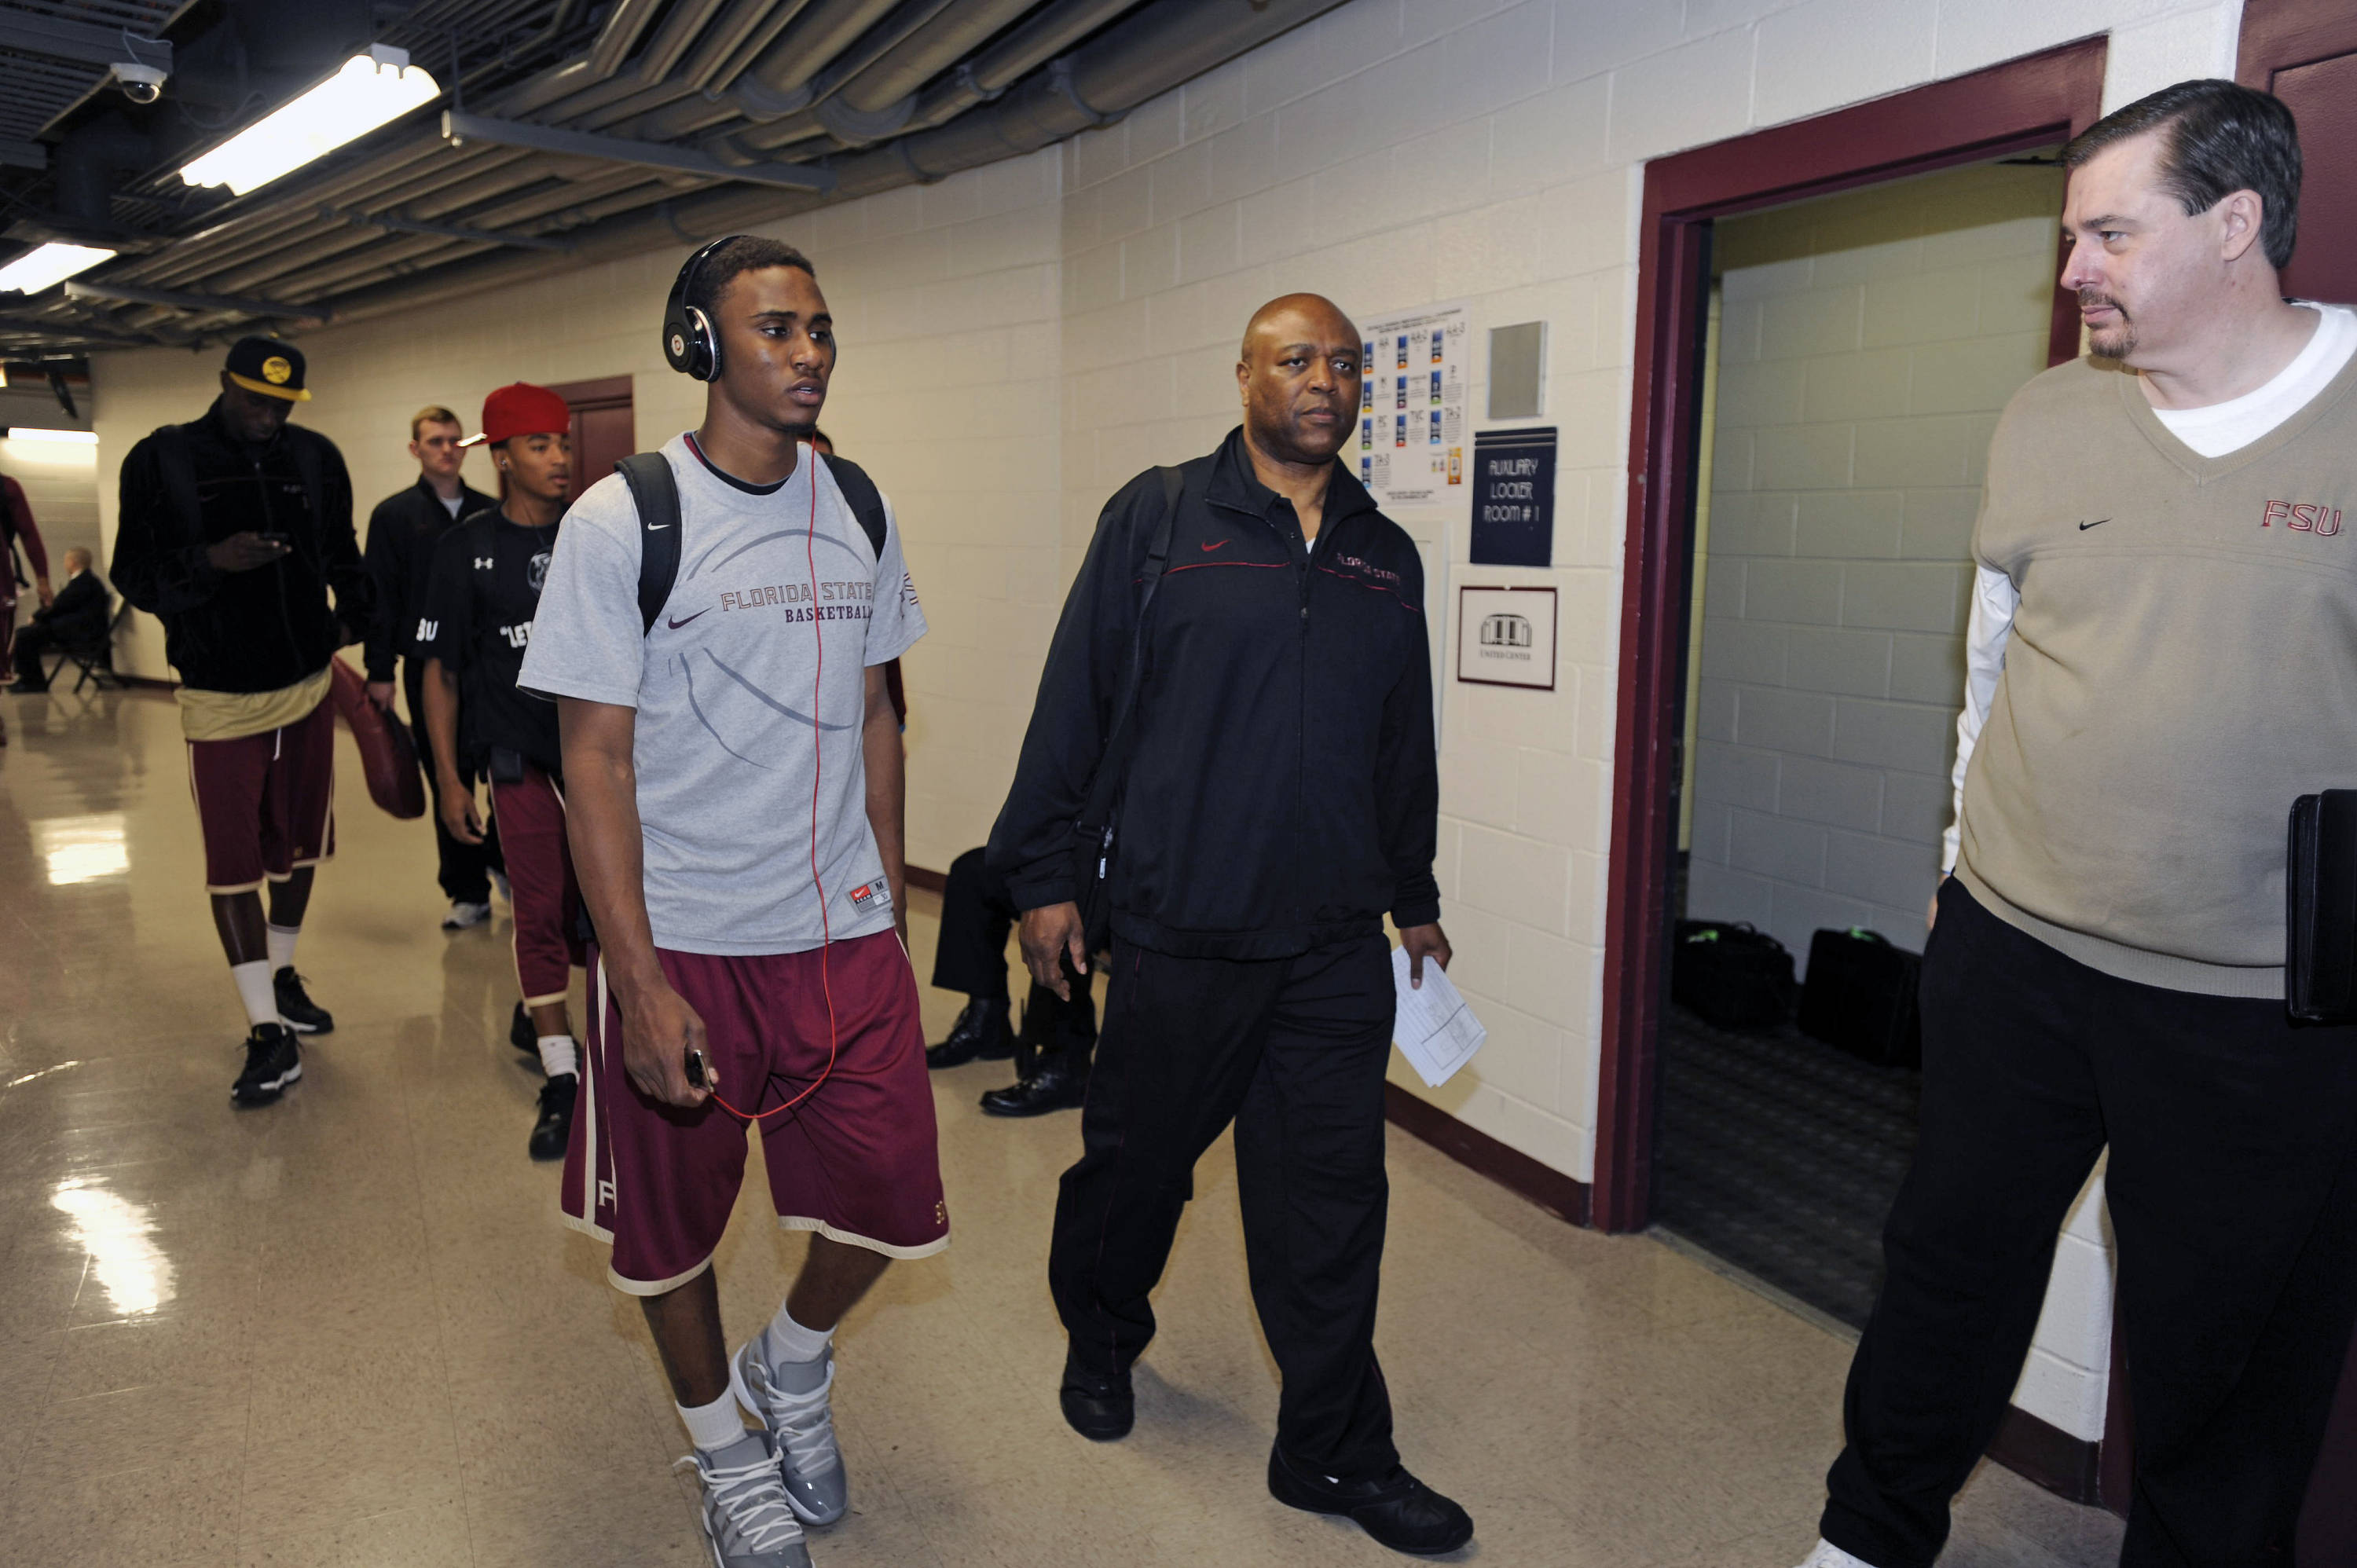 Ian Miller, Leonard Hamilton and Stan Jones walking the halls at the United Center